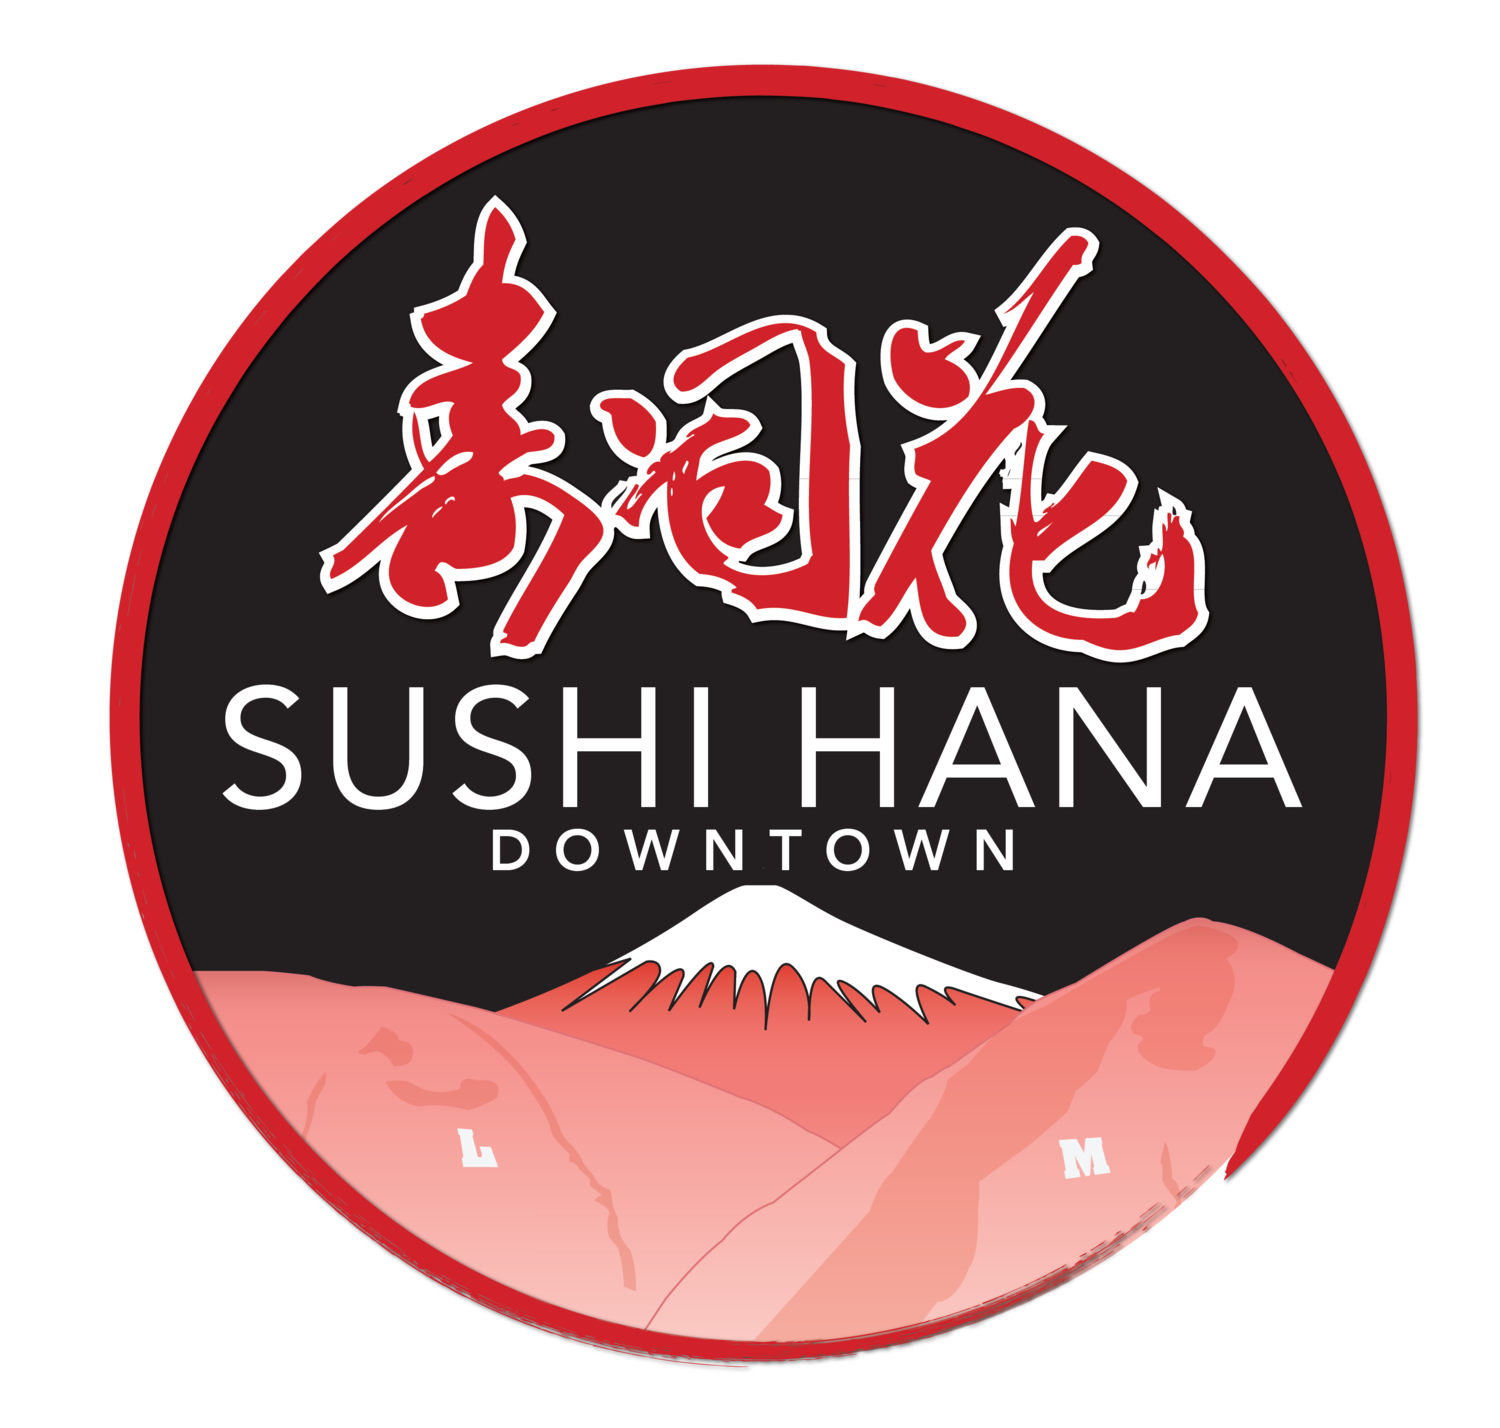 Sushi Hana Downtown | Missoula, MT  |  549-7979